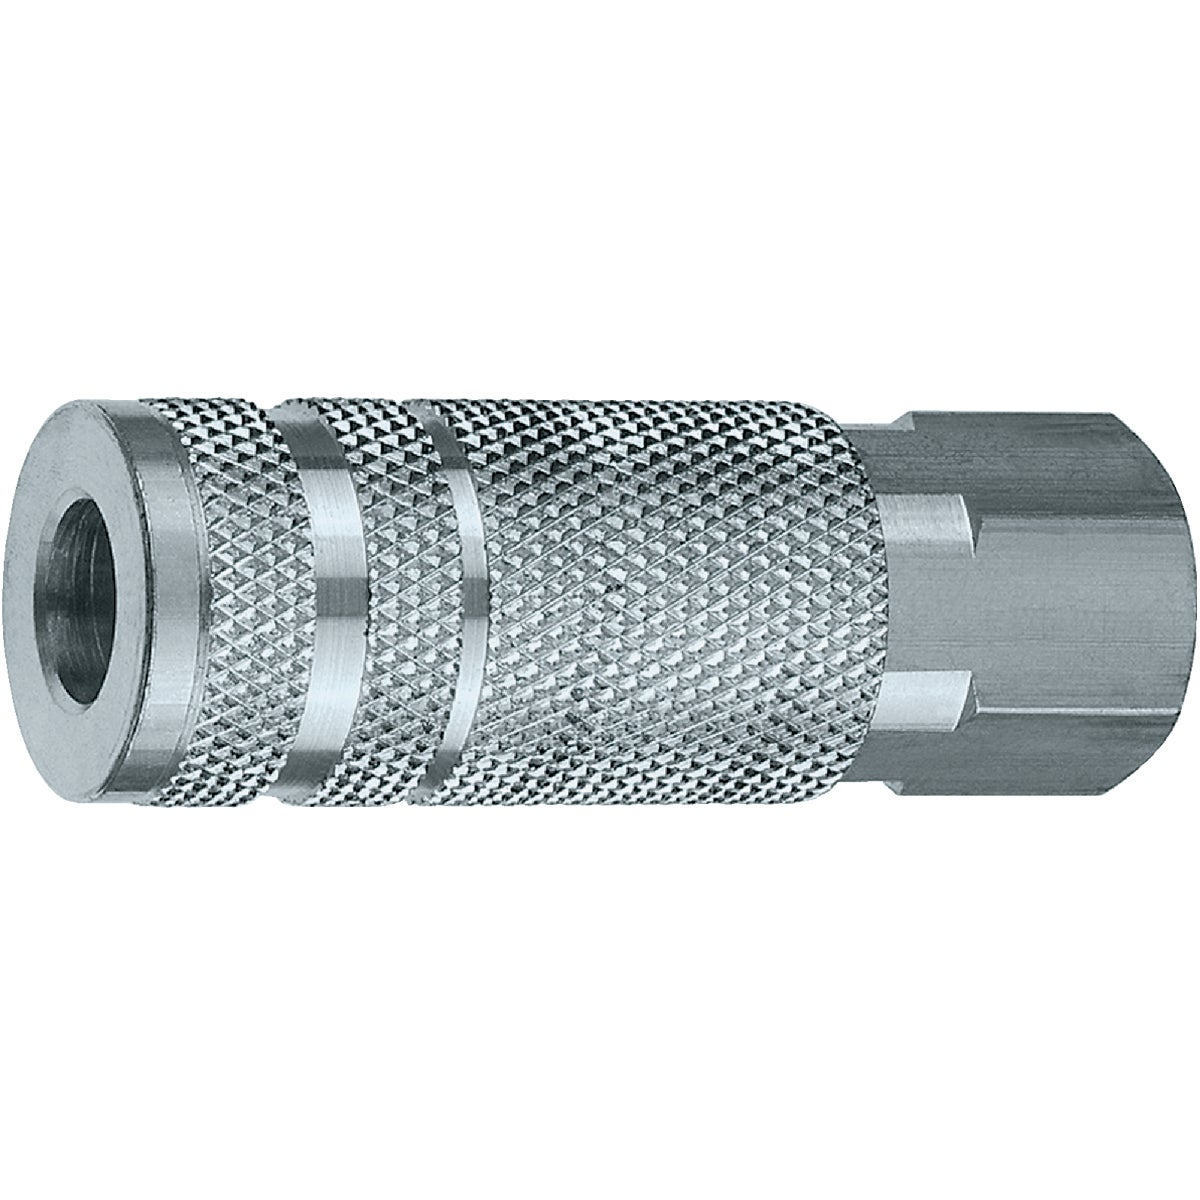 "1/4"" FEMALE COUPLER"